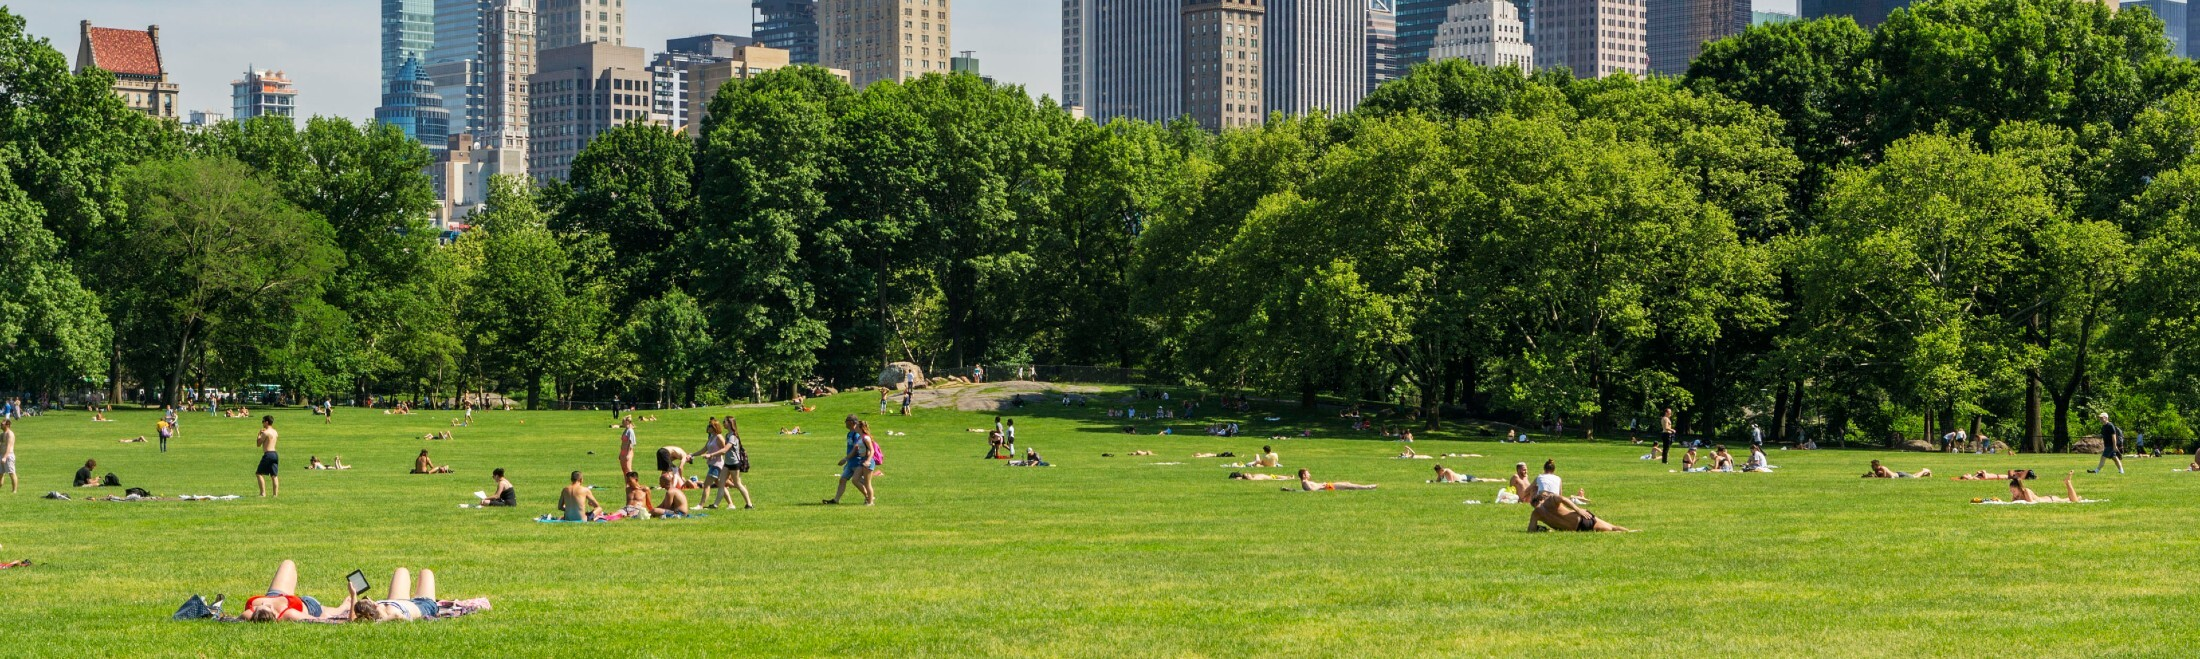 Park-goers enjoying the Sheep Meadow